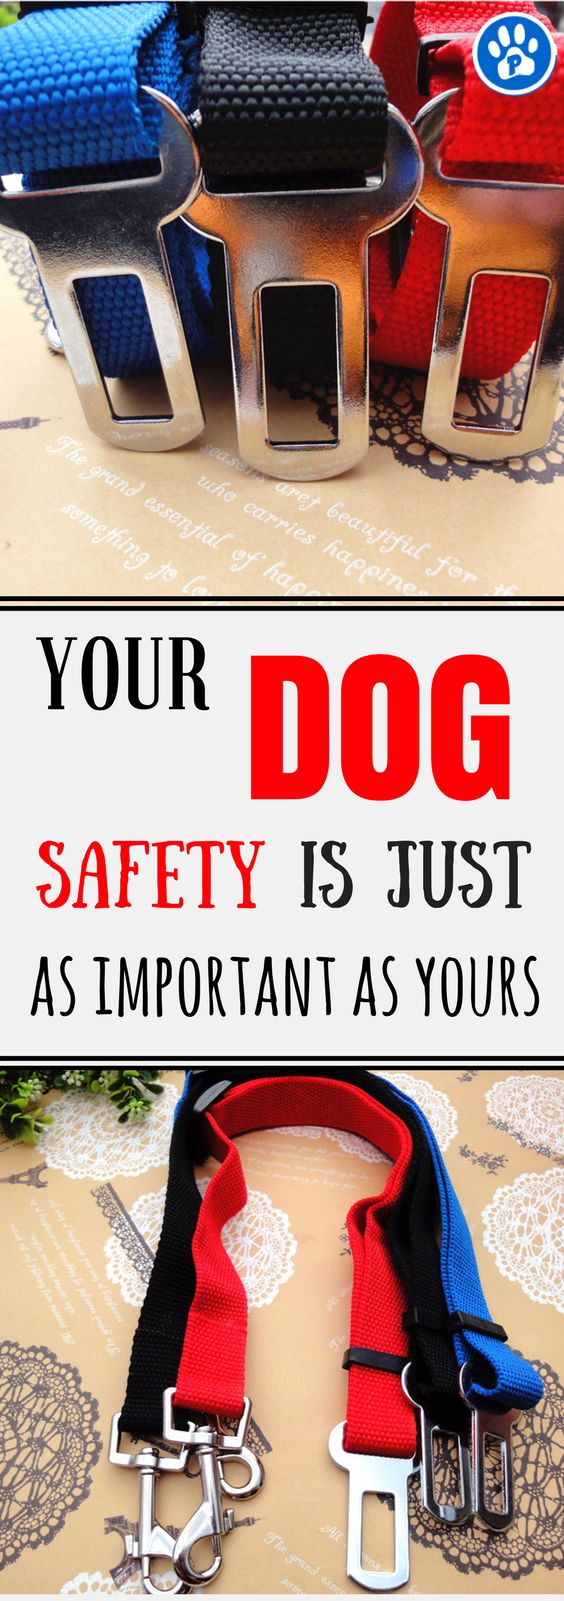 The Universal Safety Leash Car Seat Belt Restraint is the ideal accessory for keeping your dog safe and secure whilst travelling in your car. The seat belt restraint keeps dogs under control and safe